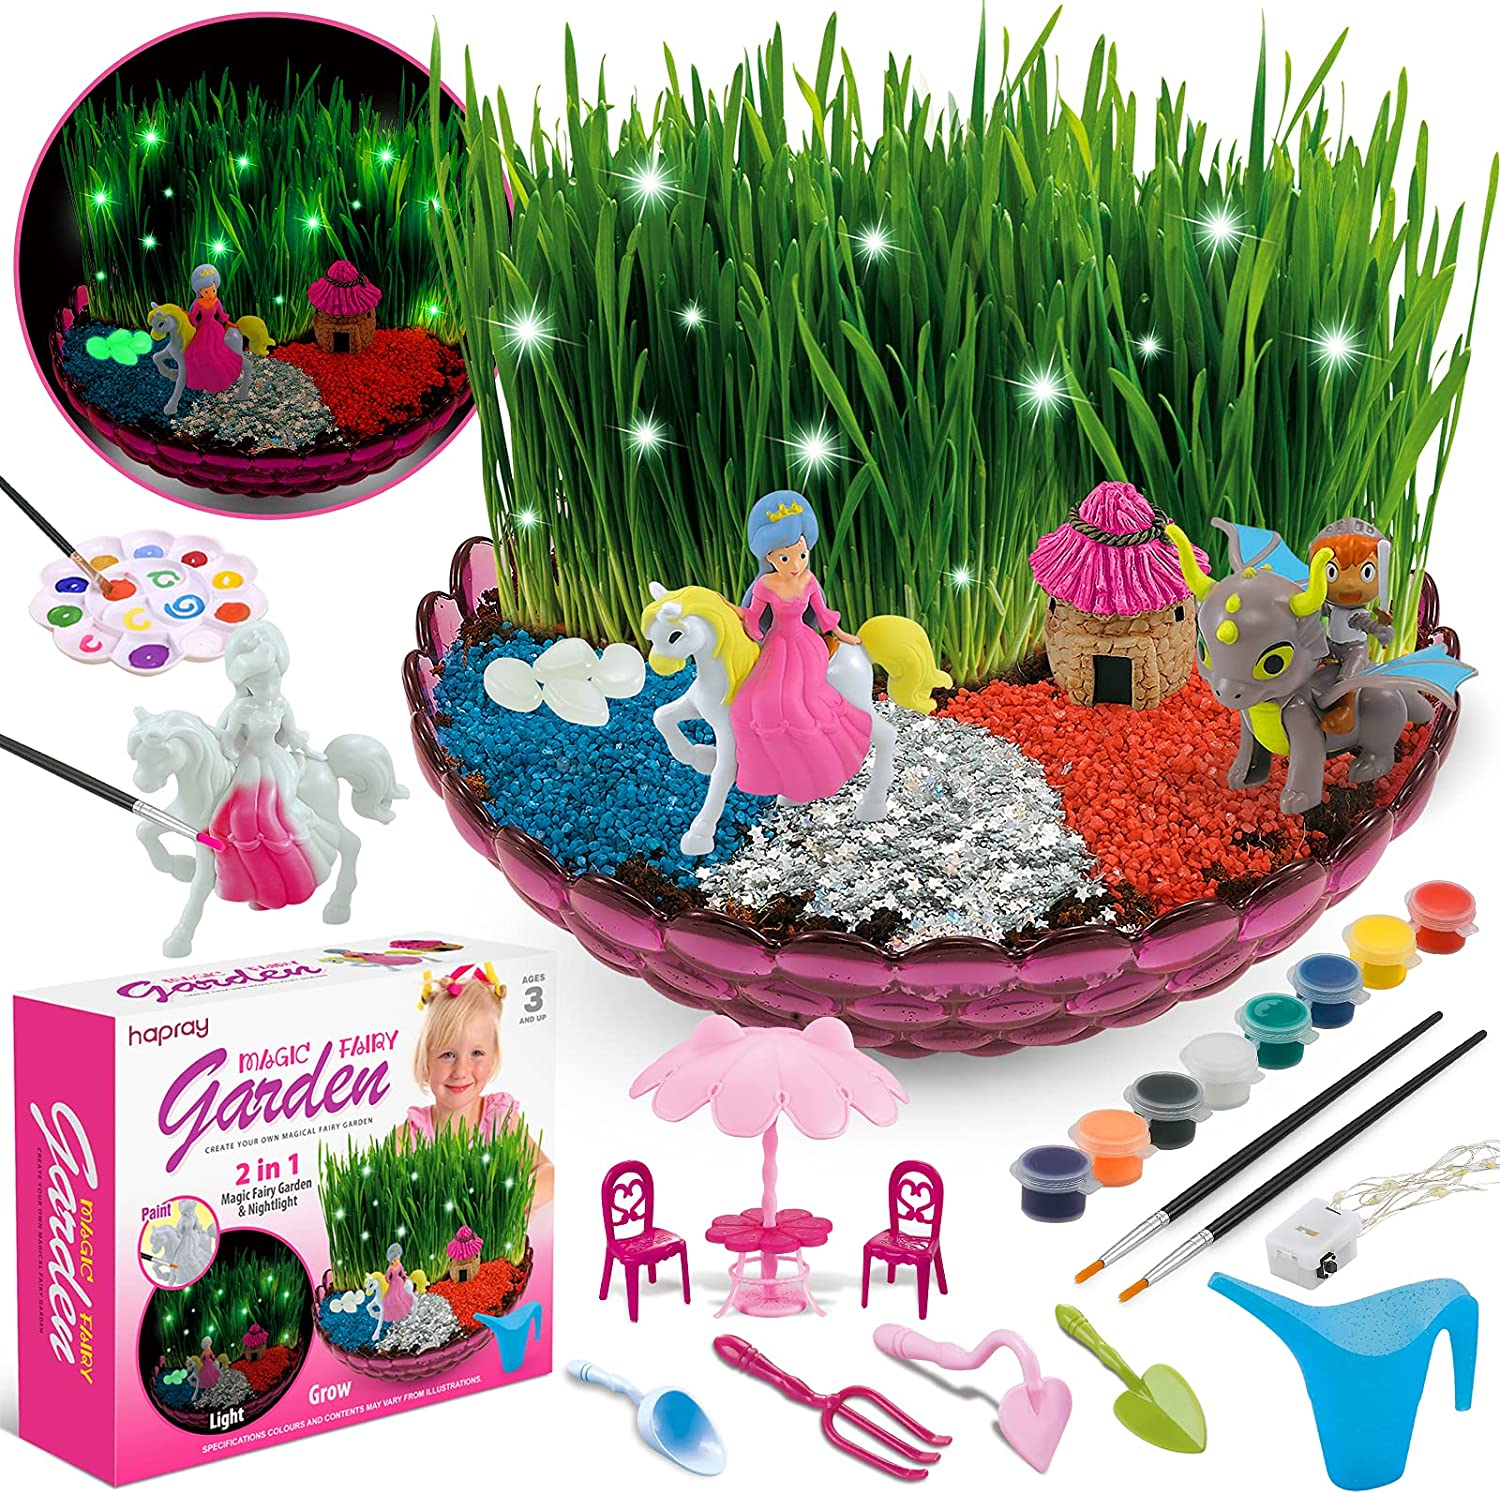 hapray Enchanted Fairy Garden Craft Kit - Fairy Crafts for Kids, with Princess and Knight, Light-Up Fairy Lights, Plant & Grow Growing Kits Science Set - Children All Ages Both Girls and Boys